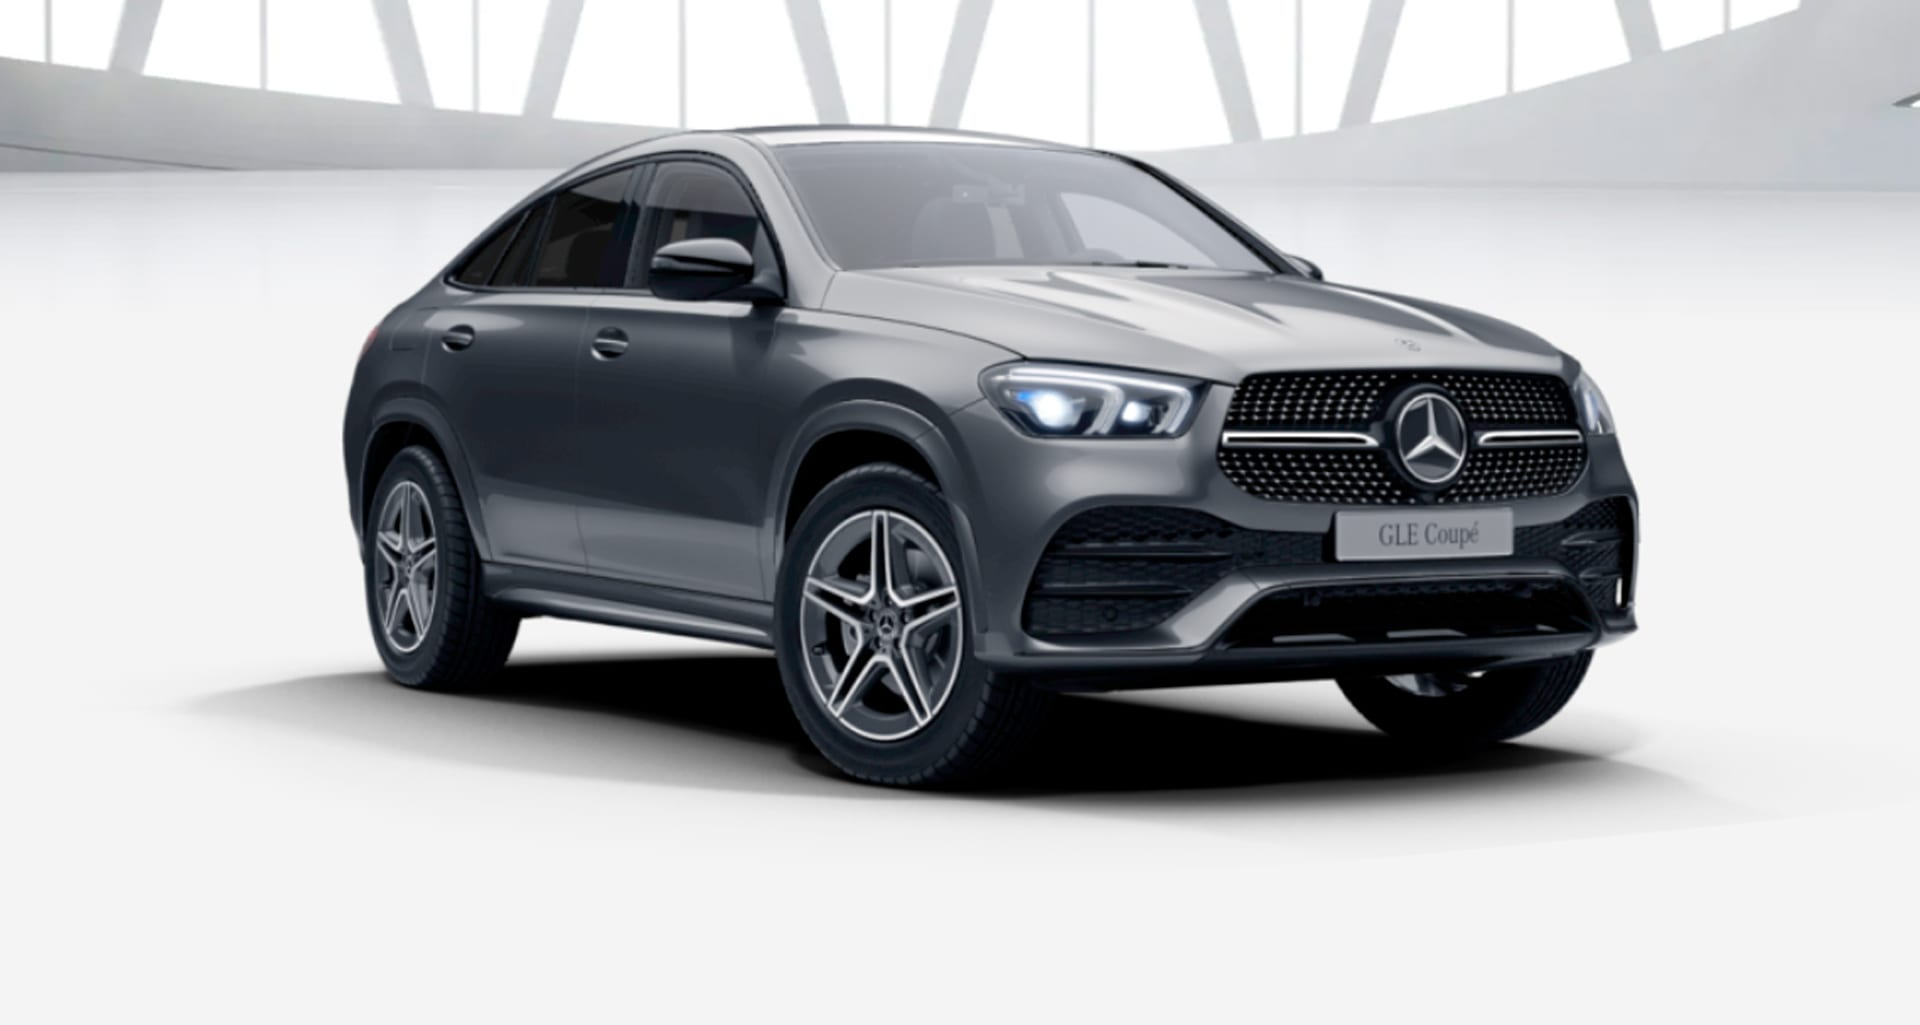 Mercedes-Benz GLE Coupe 0152623222